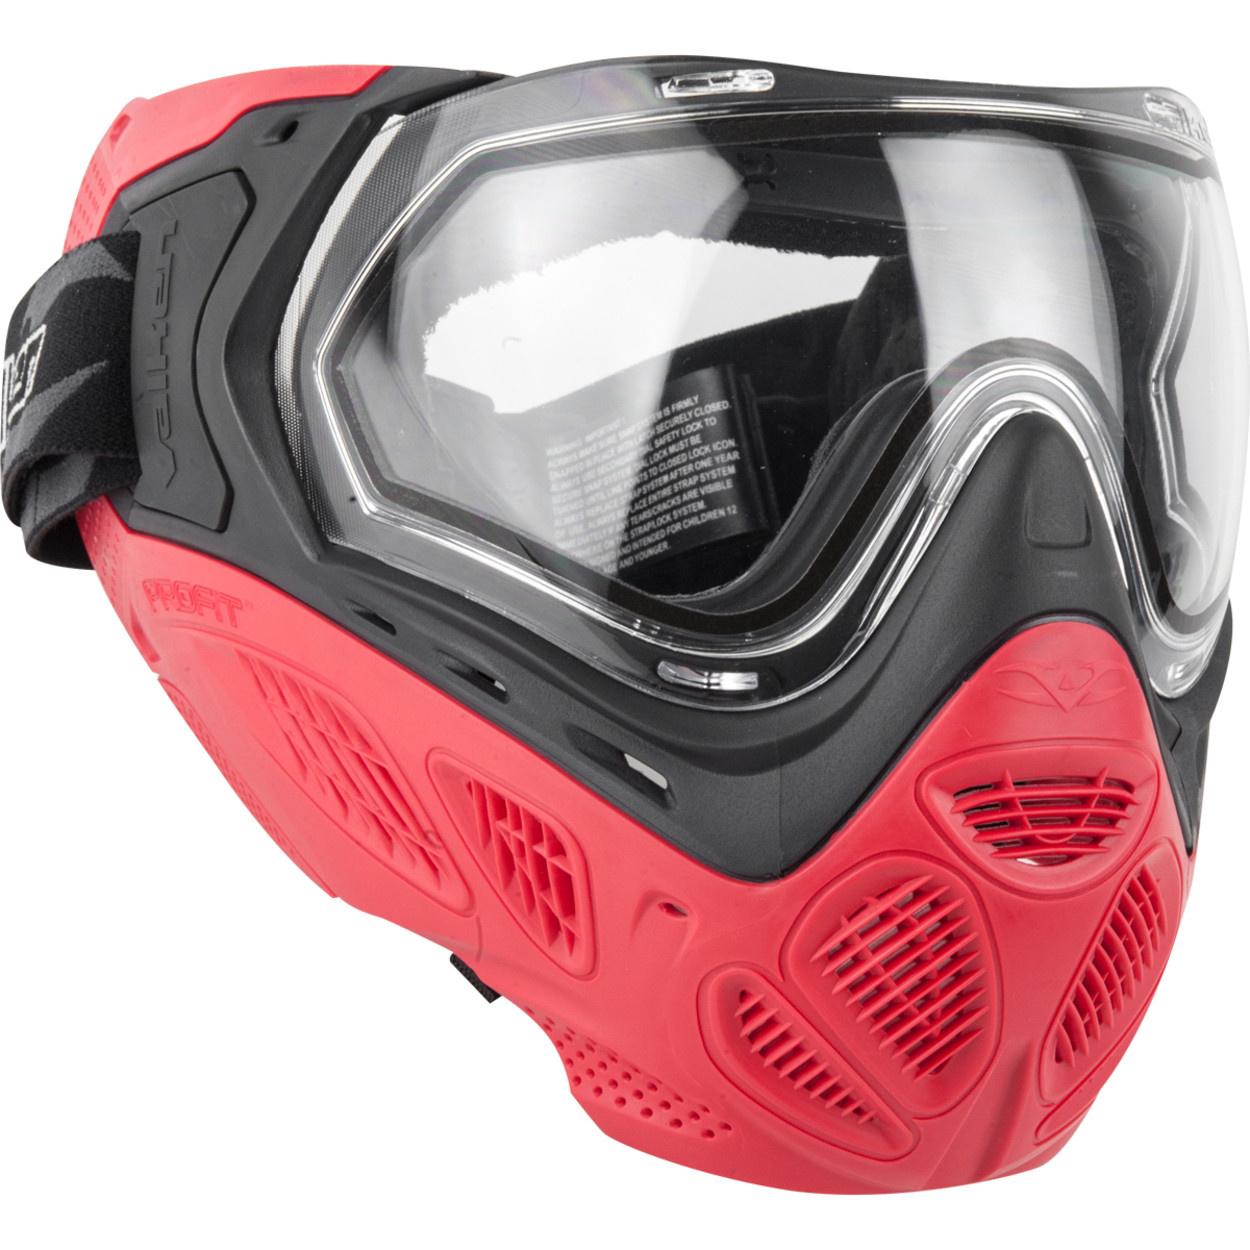 Valken Sly Profit SC Goggle Thermal Glass Mask - RD